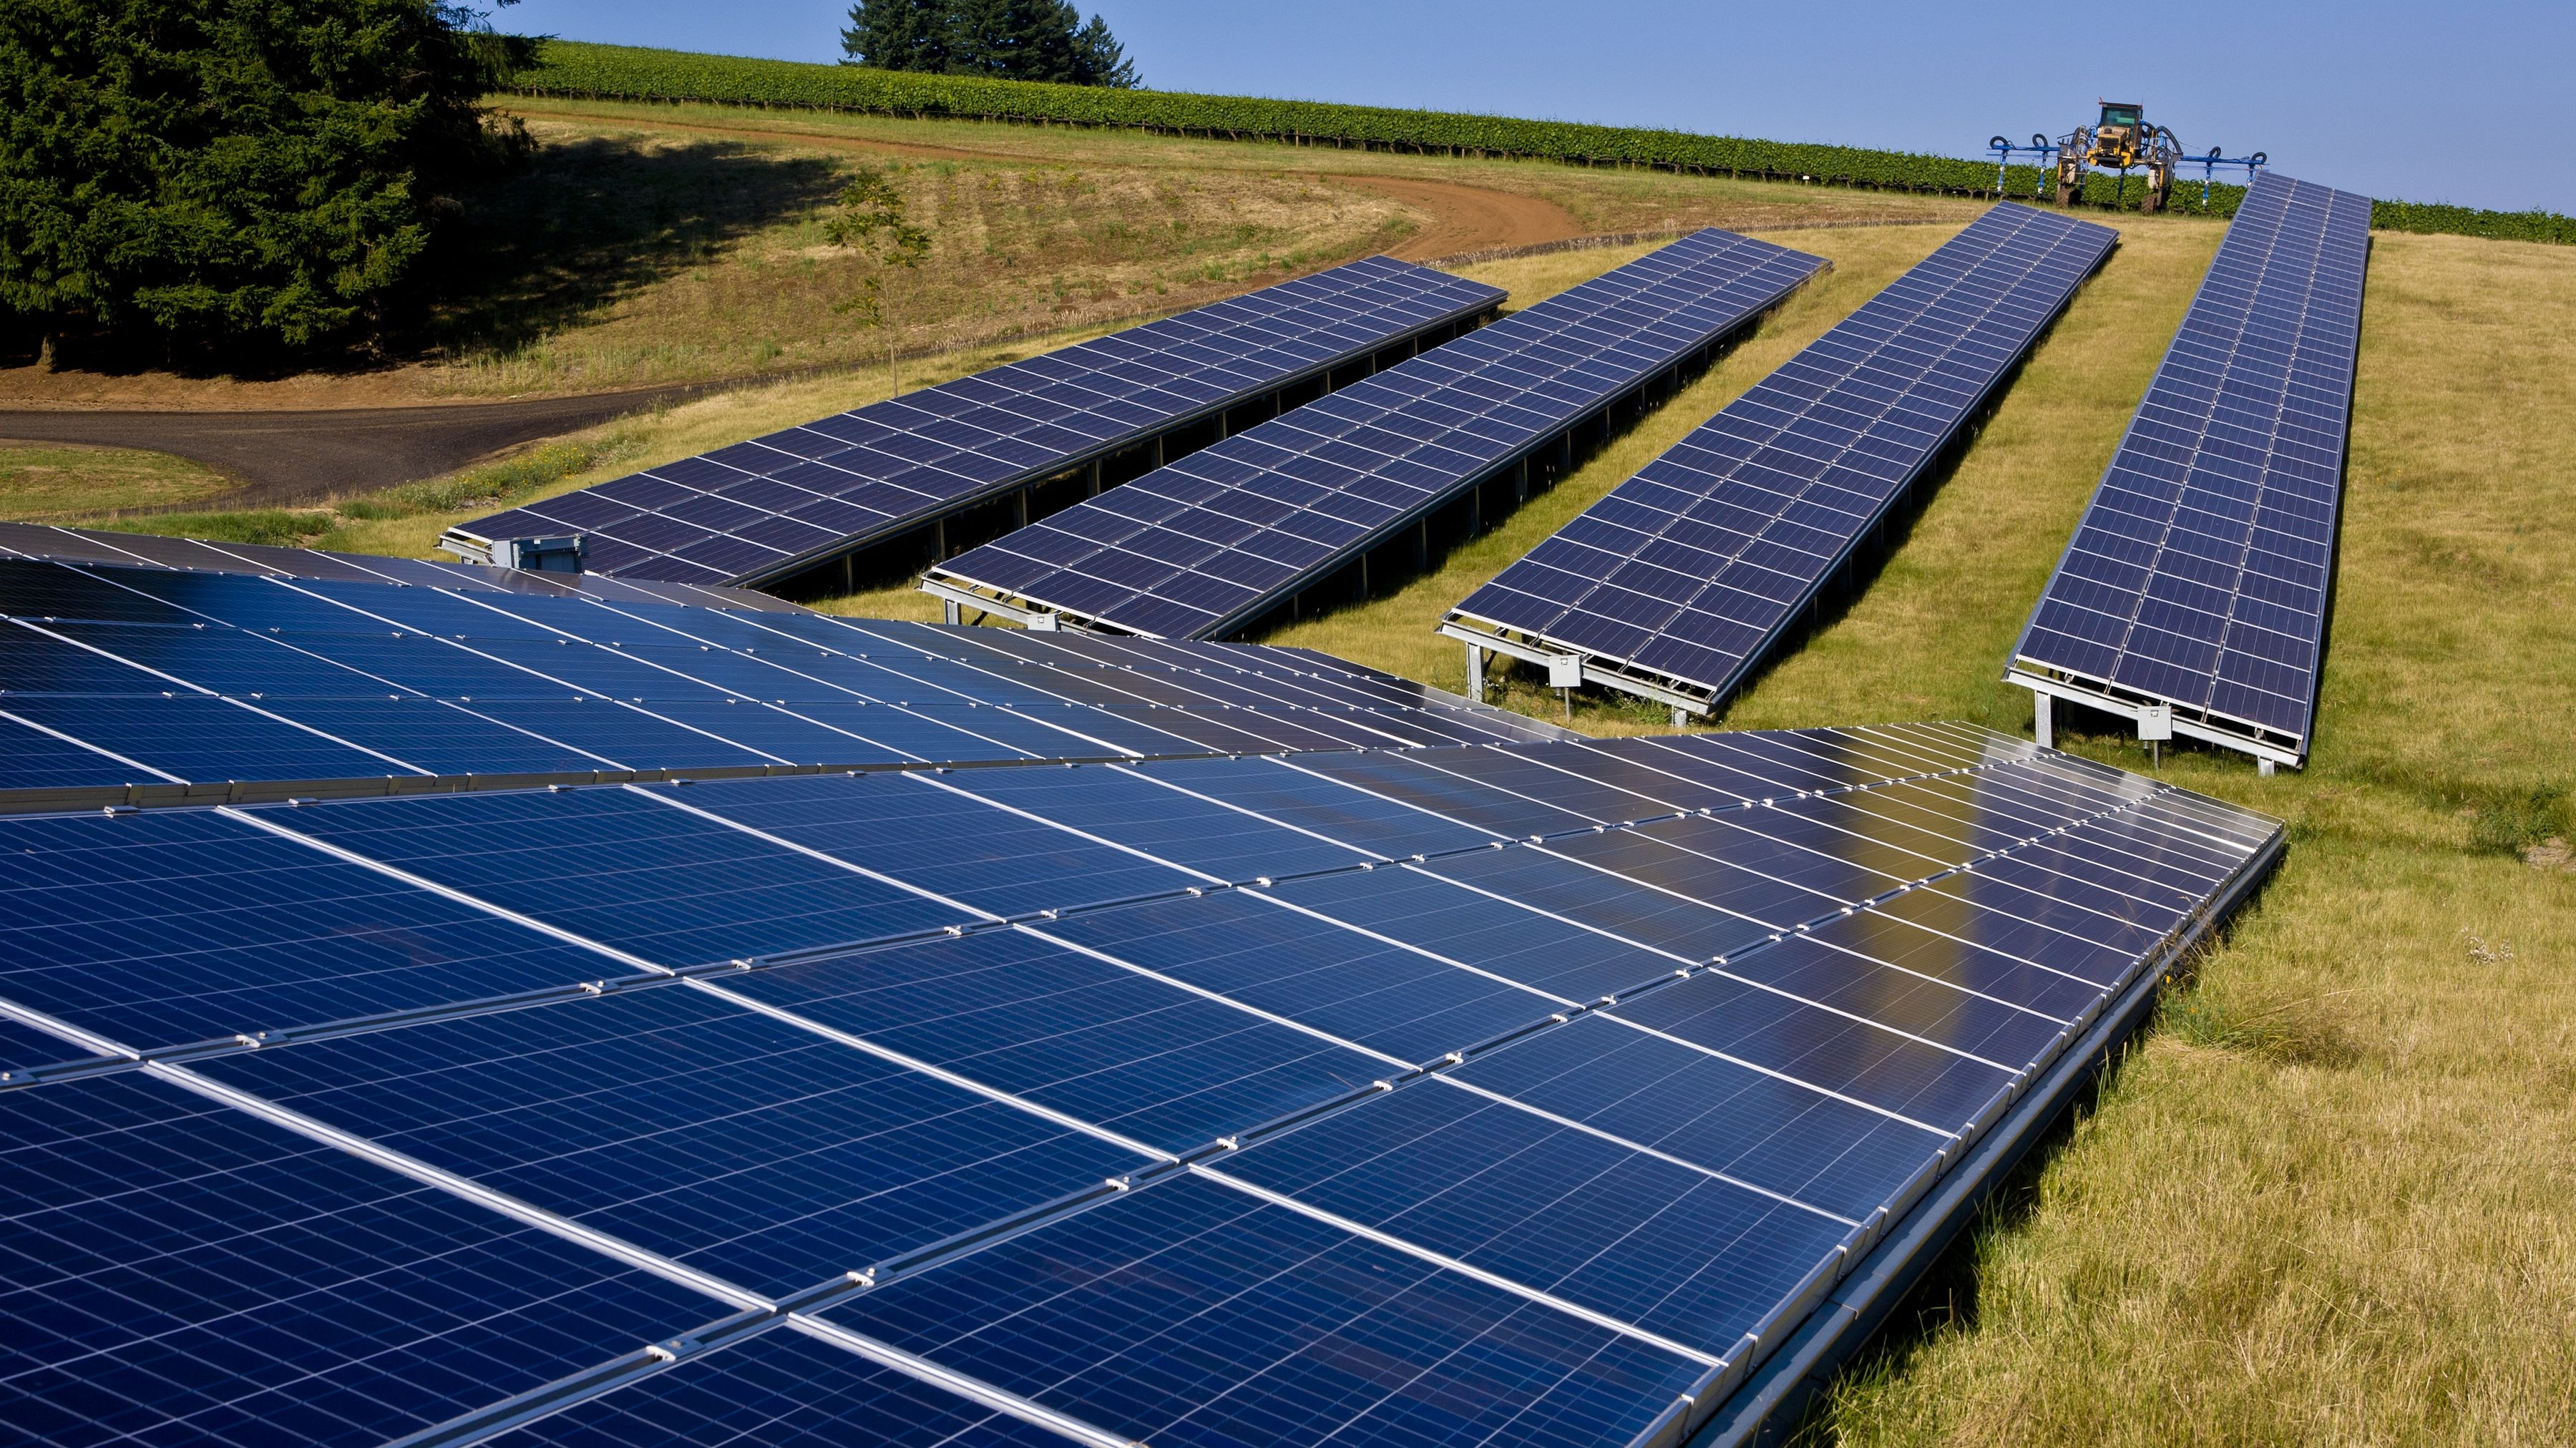 McMINNVILLE, OR - JULY 25:  An array of solar panels, located in a vineyard at Domaine Drouhin in the Dundee Hills, is viewed on July 25, 2012, near McMinnville, Oregon.  The cities of McMinnville and Newburg, located in the Willamette Valley wine appellation, are the epicenter of Oregon's wine production. (Photo by George Rose/Getty Images)